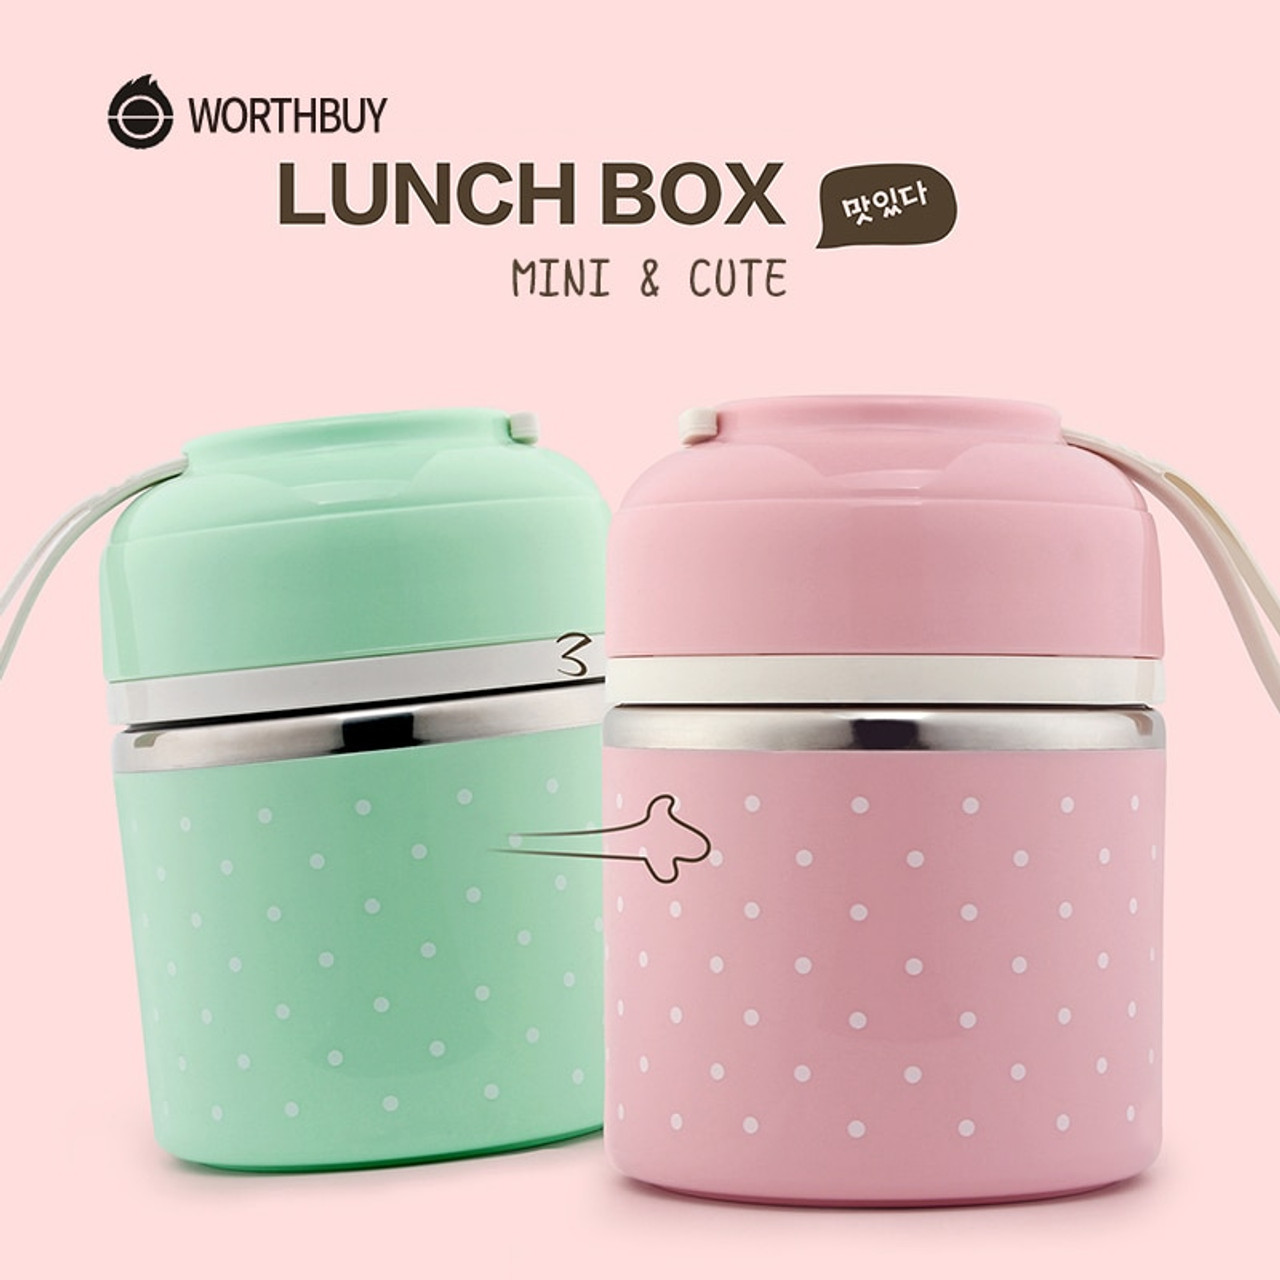 0f53b6cbdc20 WORTHBUY Cute Japanese Thermal Lunch Box Leak-Proof Stainless Steel Bento  Box Kids Portable Picnic School Food Container Box